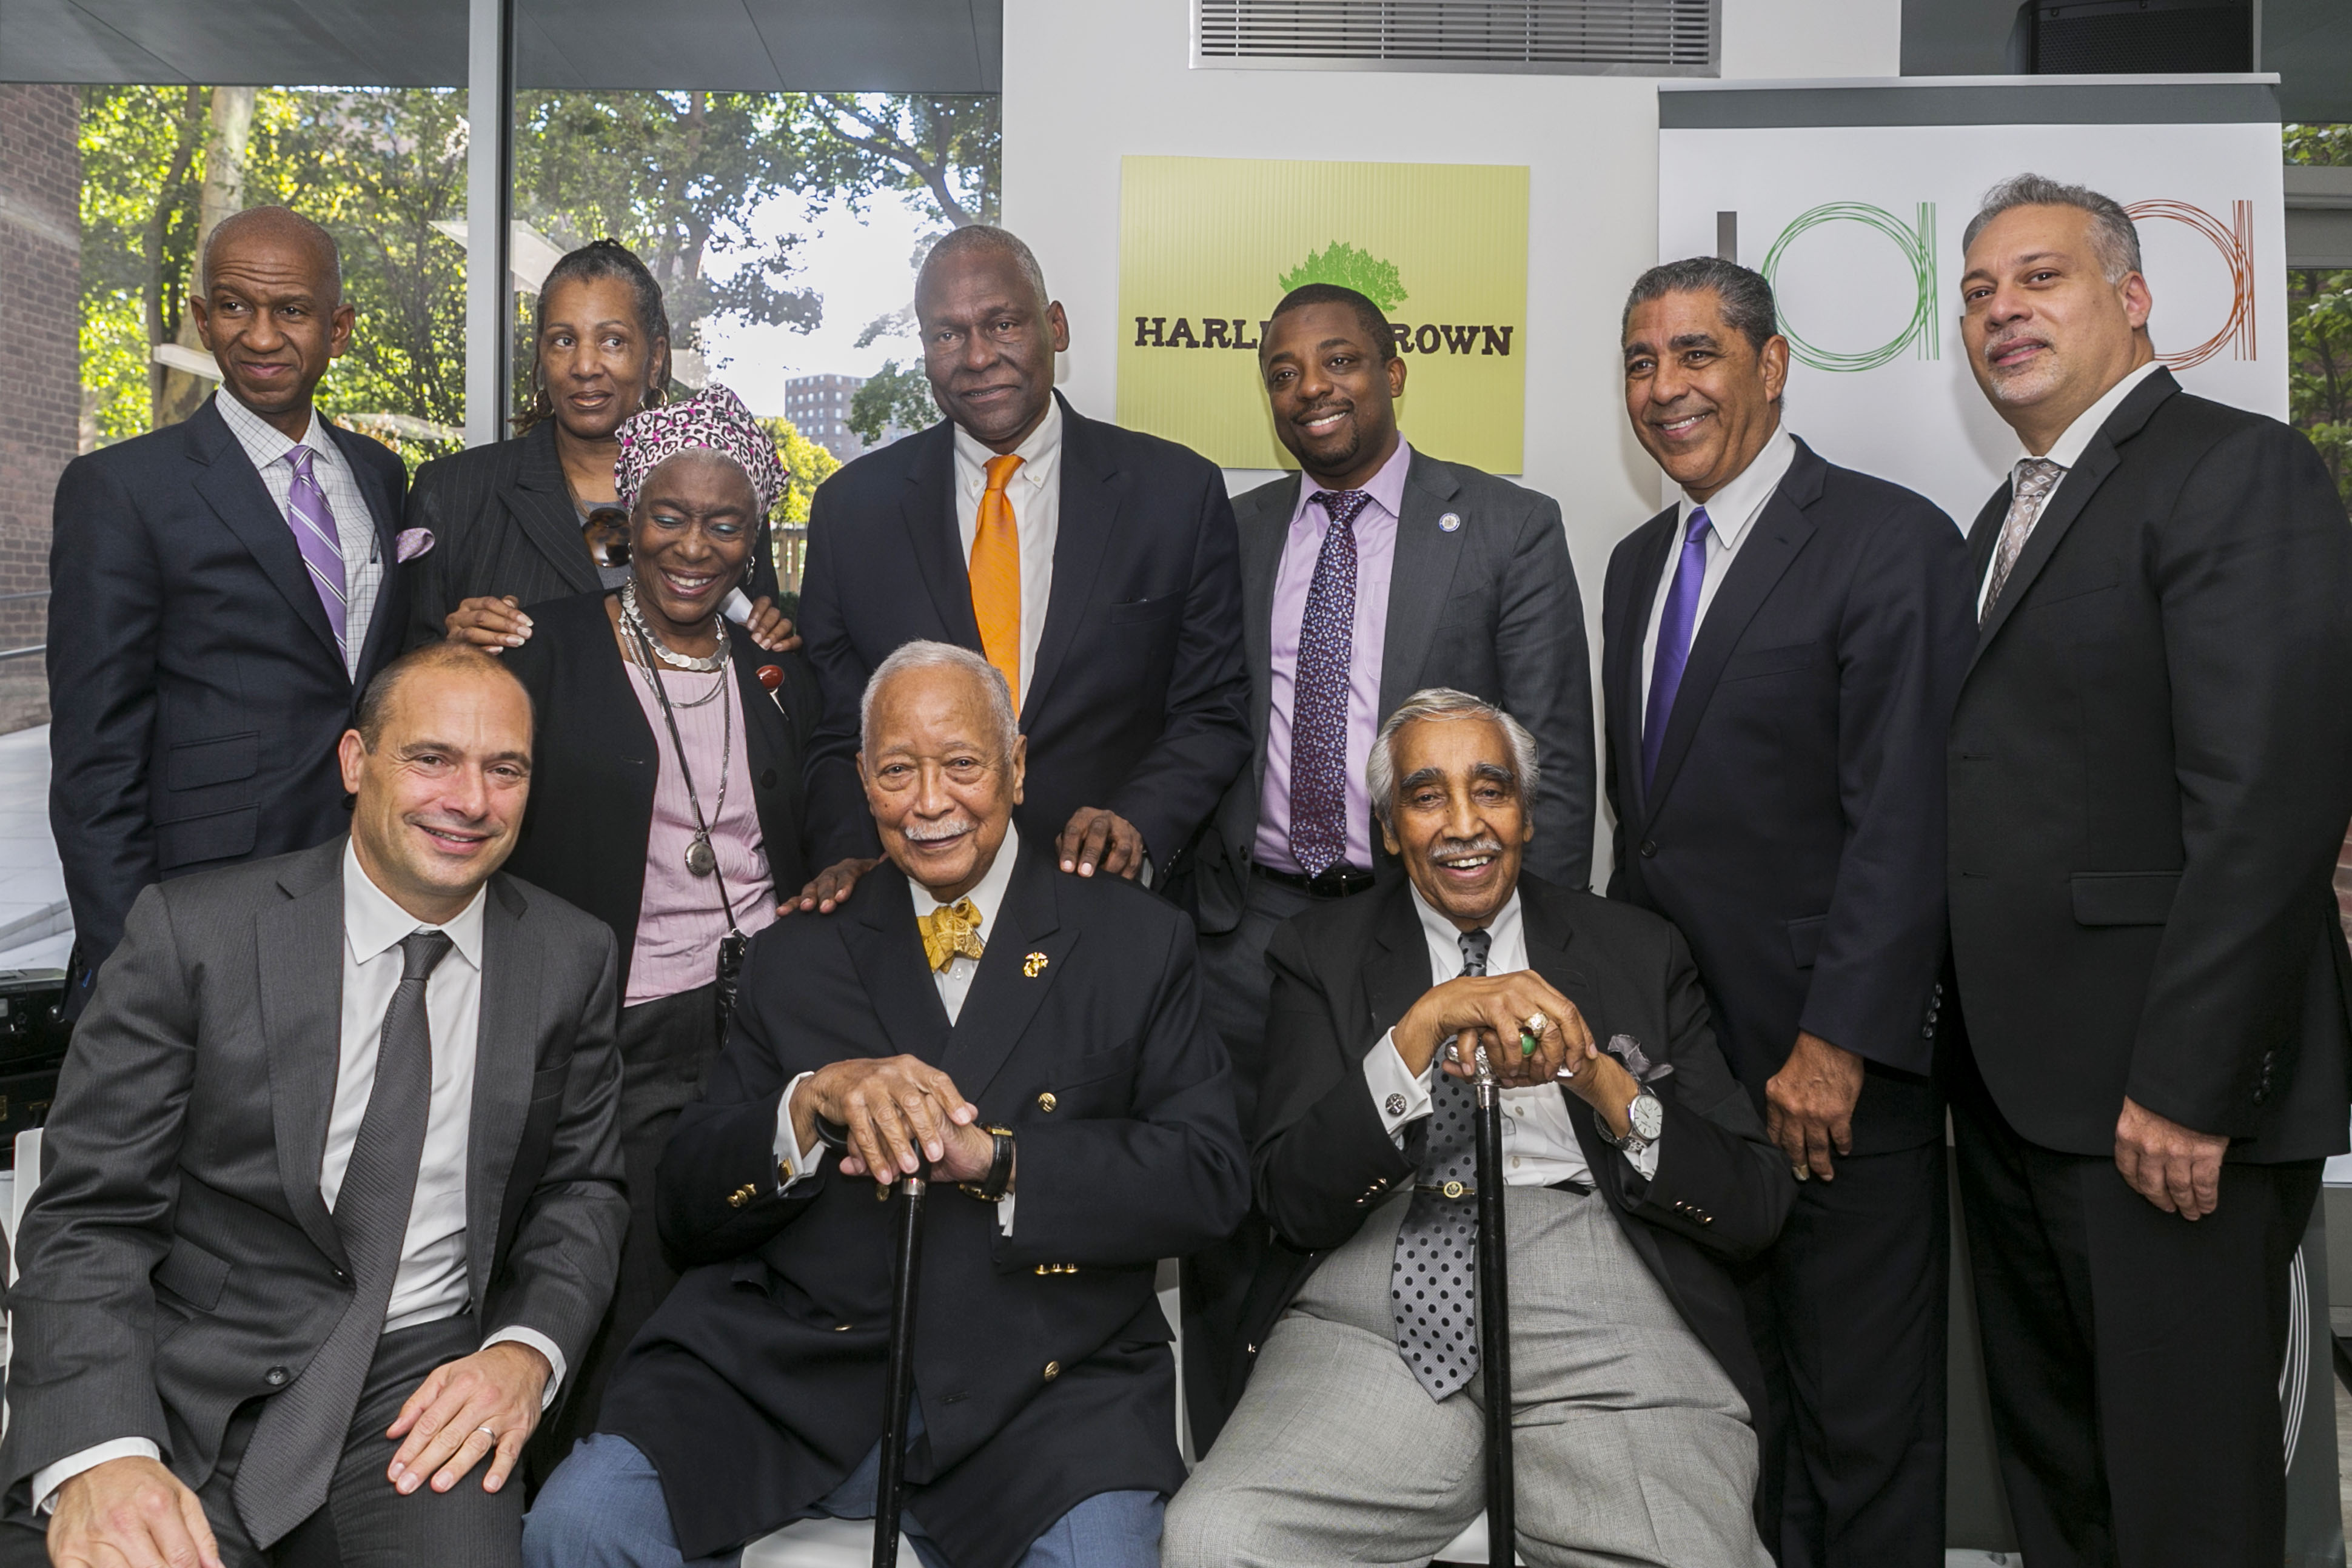 halrem s riveton square dedicates new community center to mayor david dinkins and wife new york amsterdam news the new black view halrem s riveton square dedicates new community center to mayor david dinkins and wife new york amsterdam news the new black view